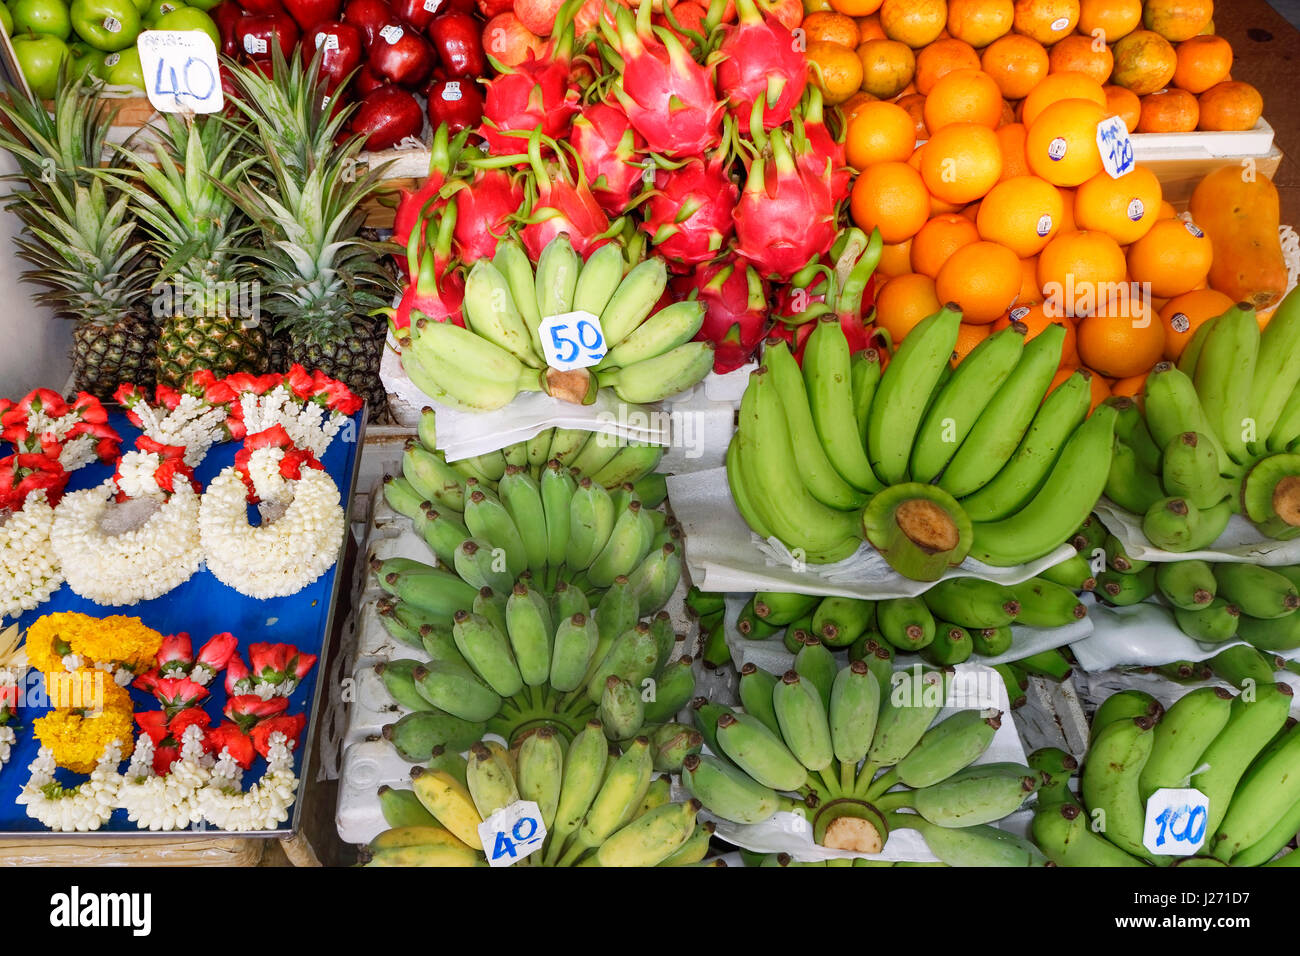 Tropical fruits in a market in Bangkok, Thailand - Stock Image